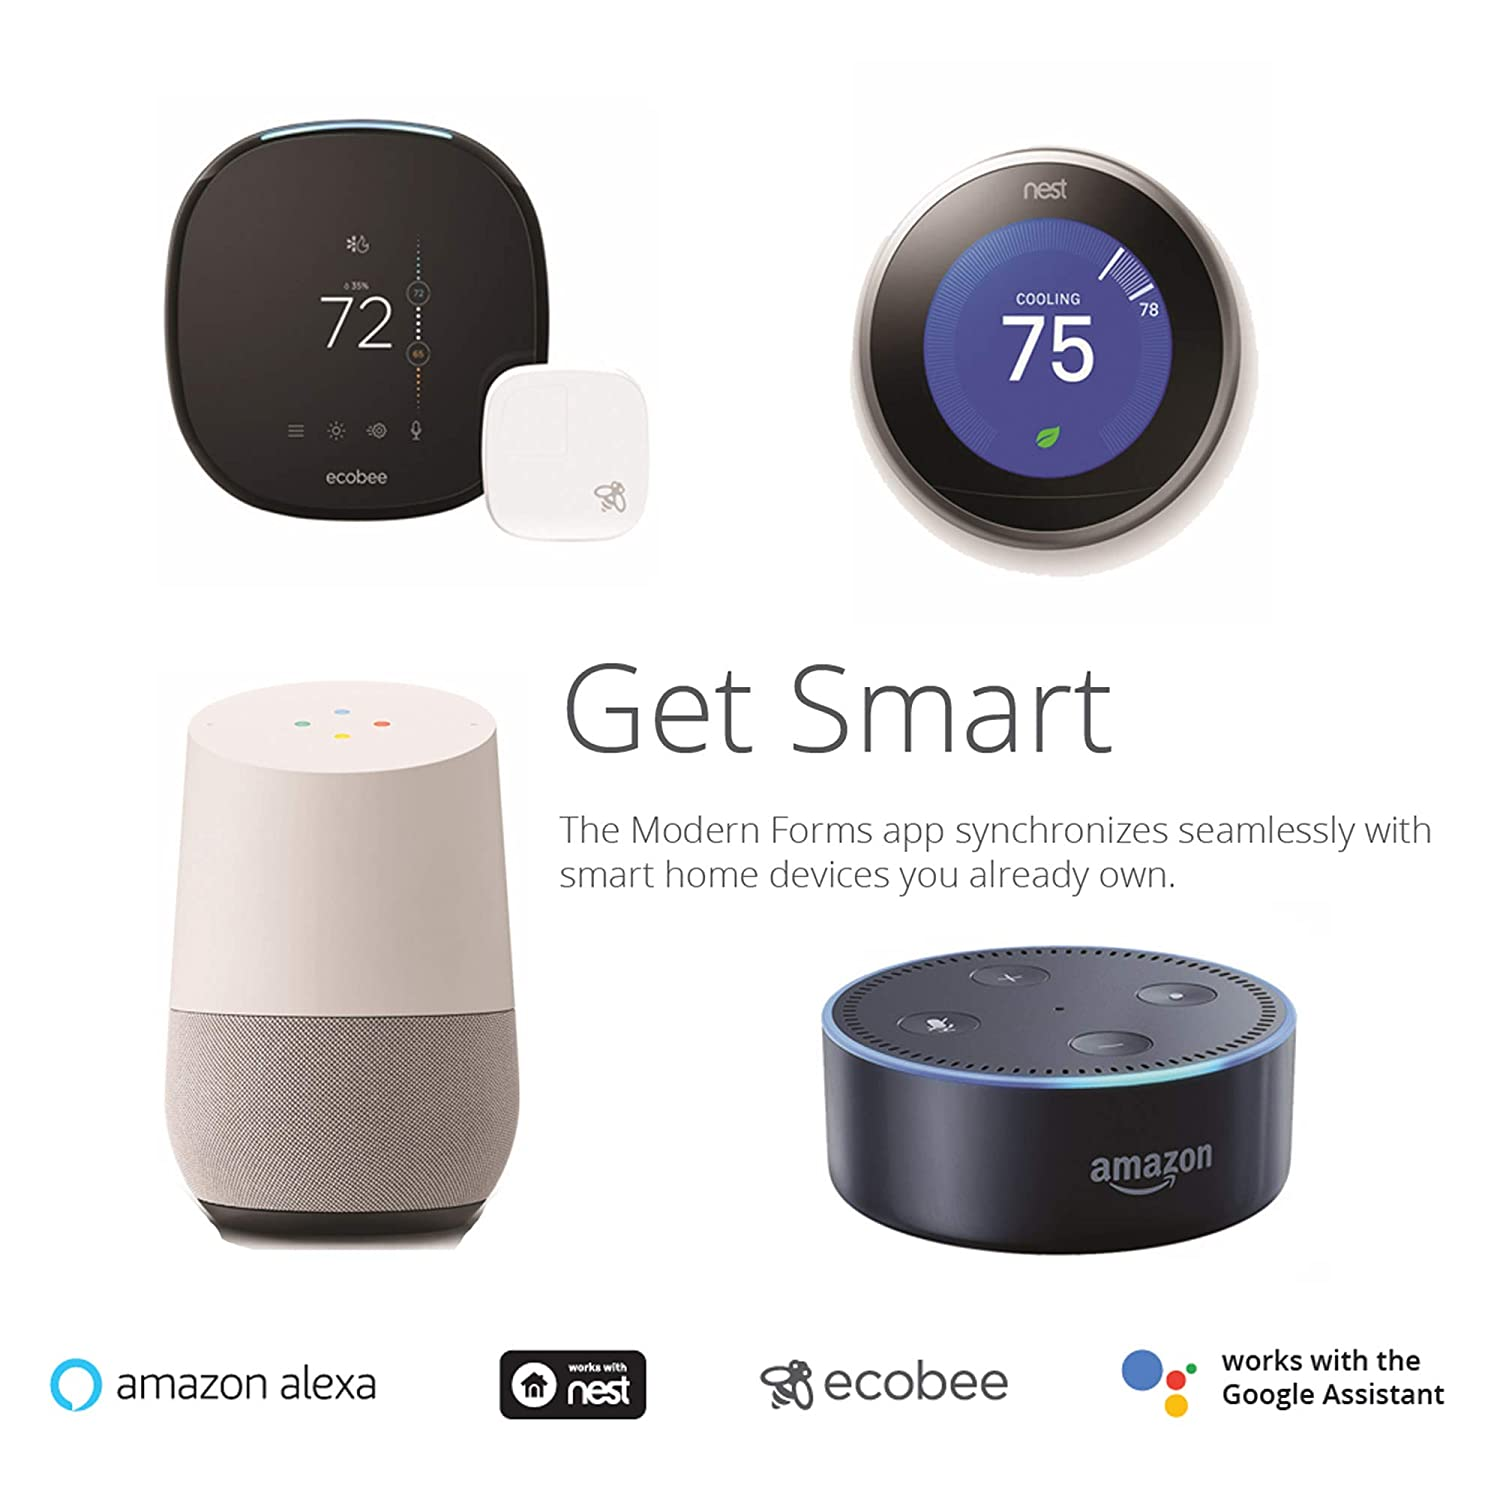 Ecobee Google Home and IOS//Android App, Modern Forms FR-W1803-52L-MW Axis 52 Inch Three Blade Indoor//Outdoor Smart Fan with Six Speed DC Motor and LED Light in Matte White Finish Works with Nest